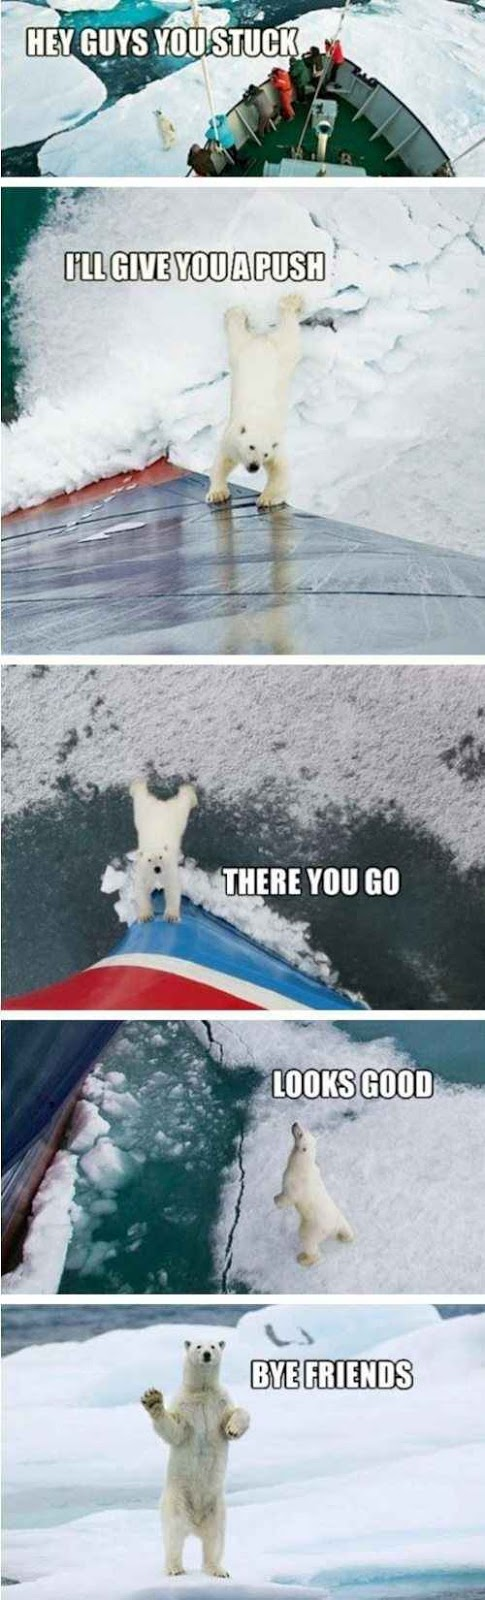 Funny Helpful Polar Bear Picture